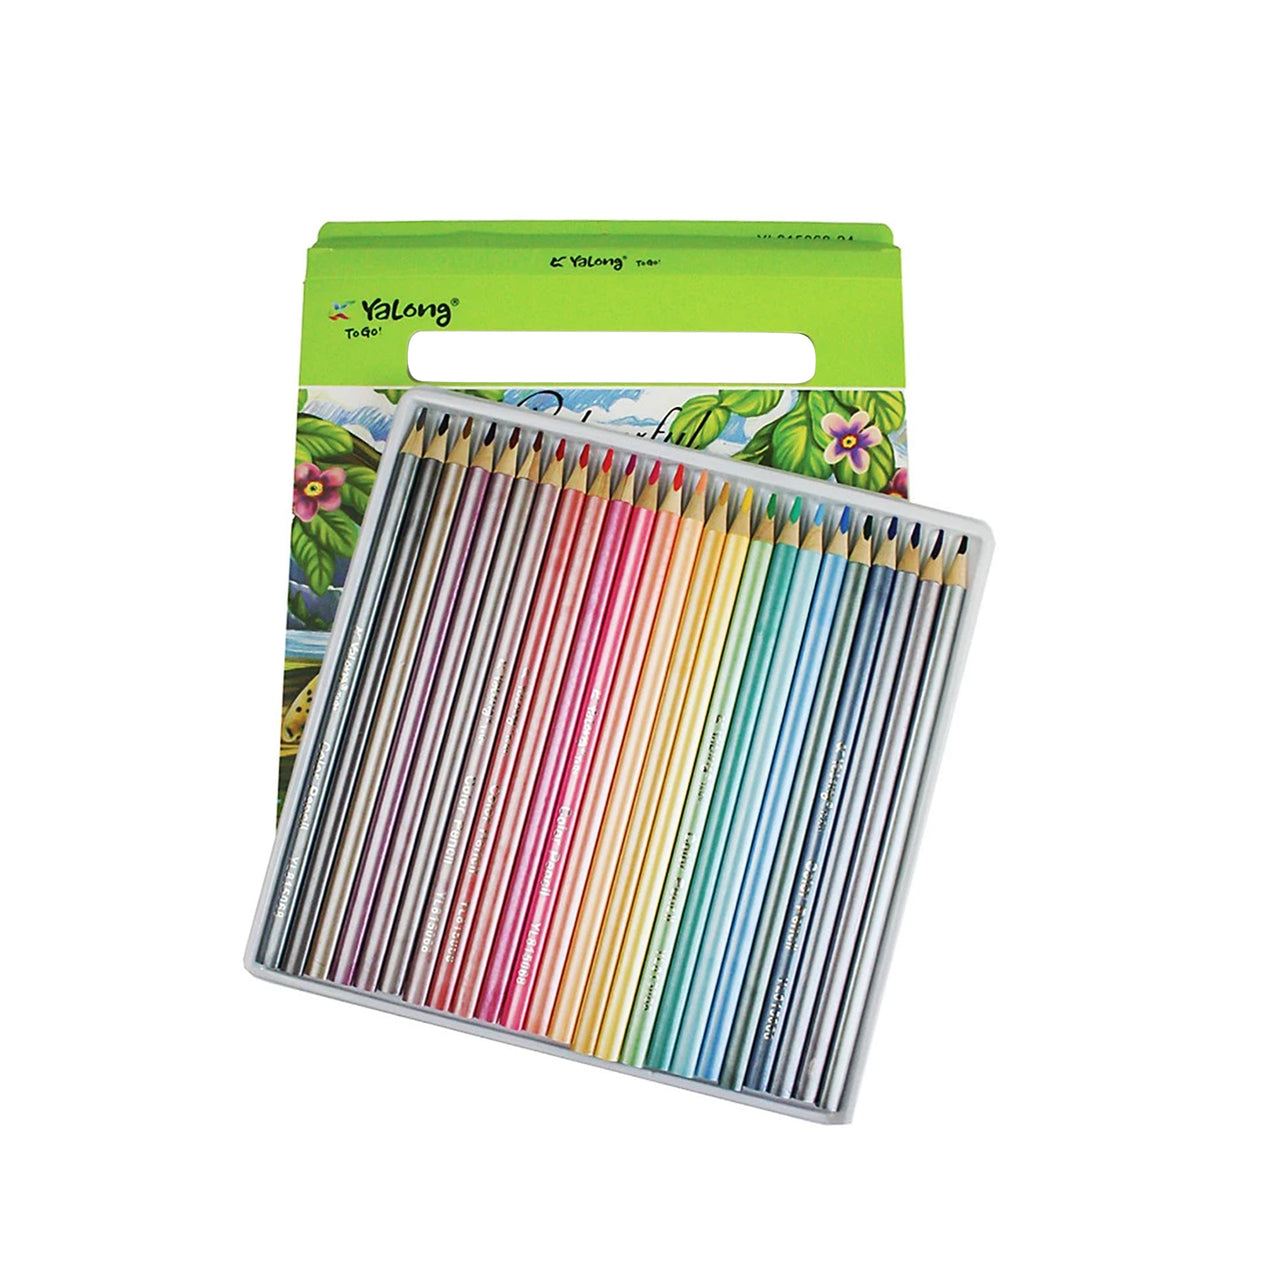 Coloring Pencils - Set of 24